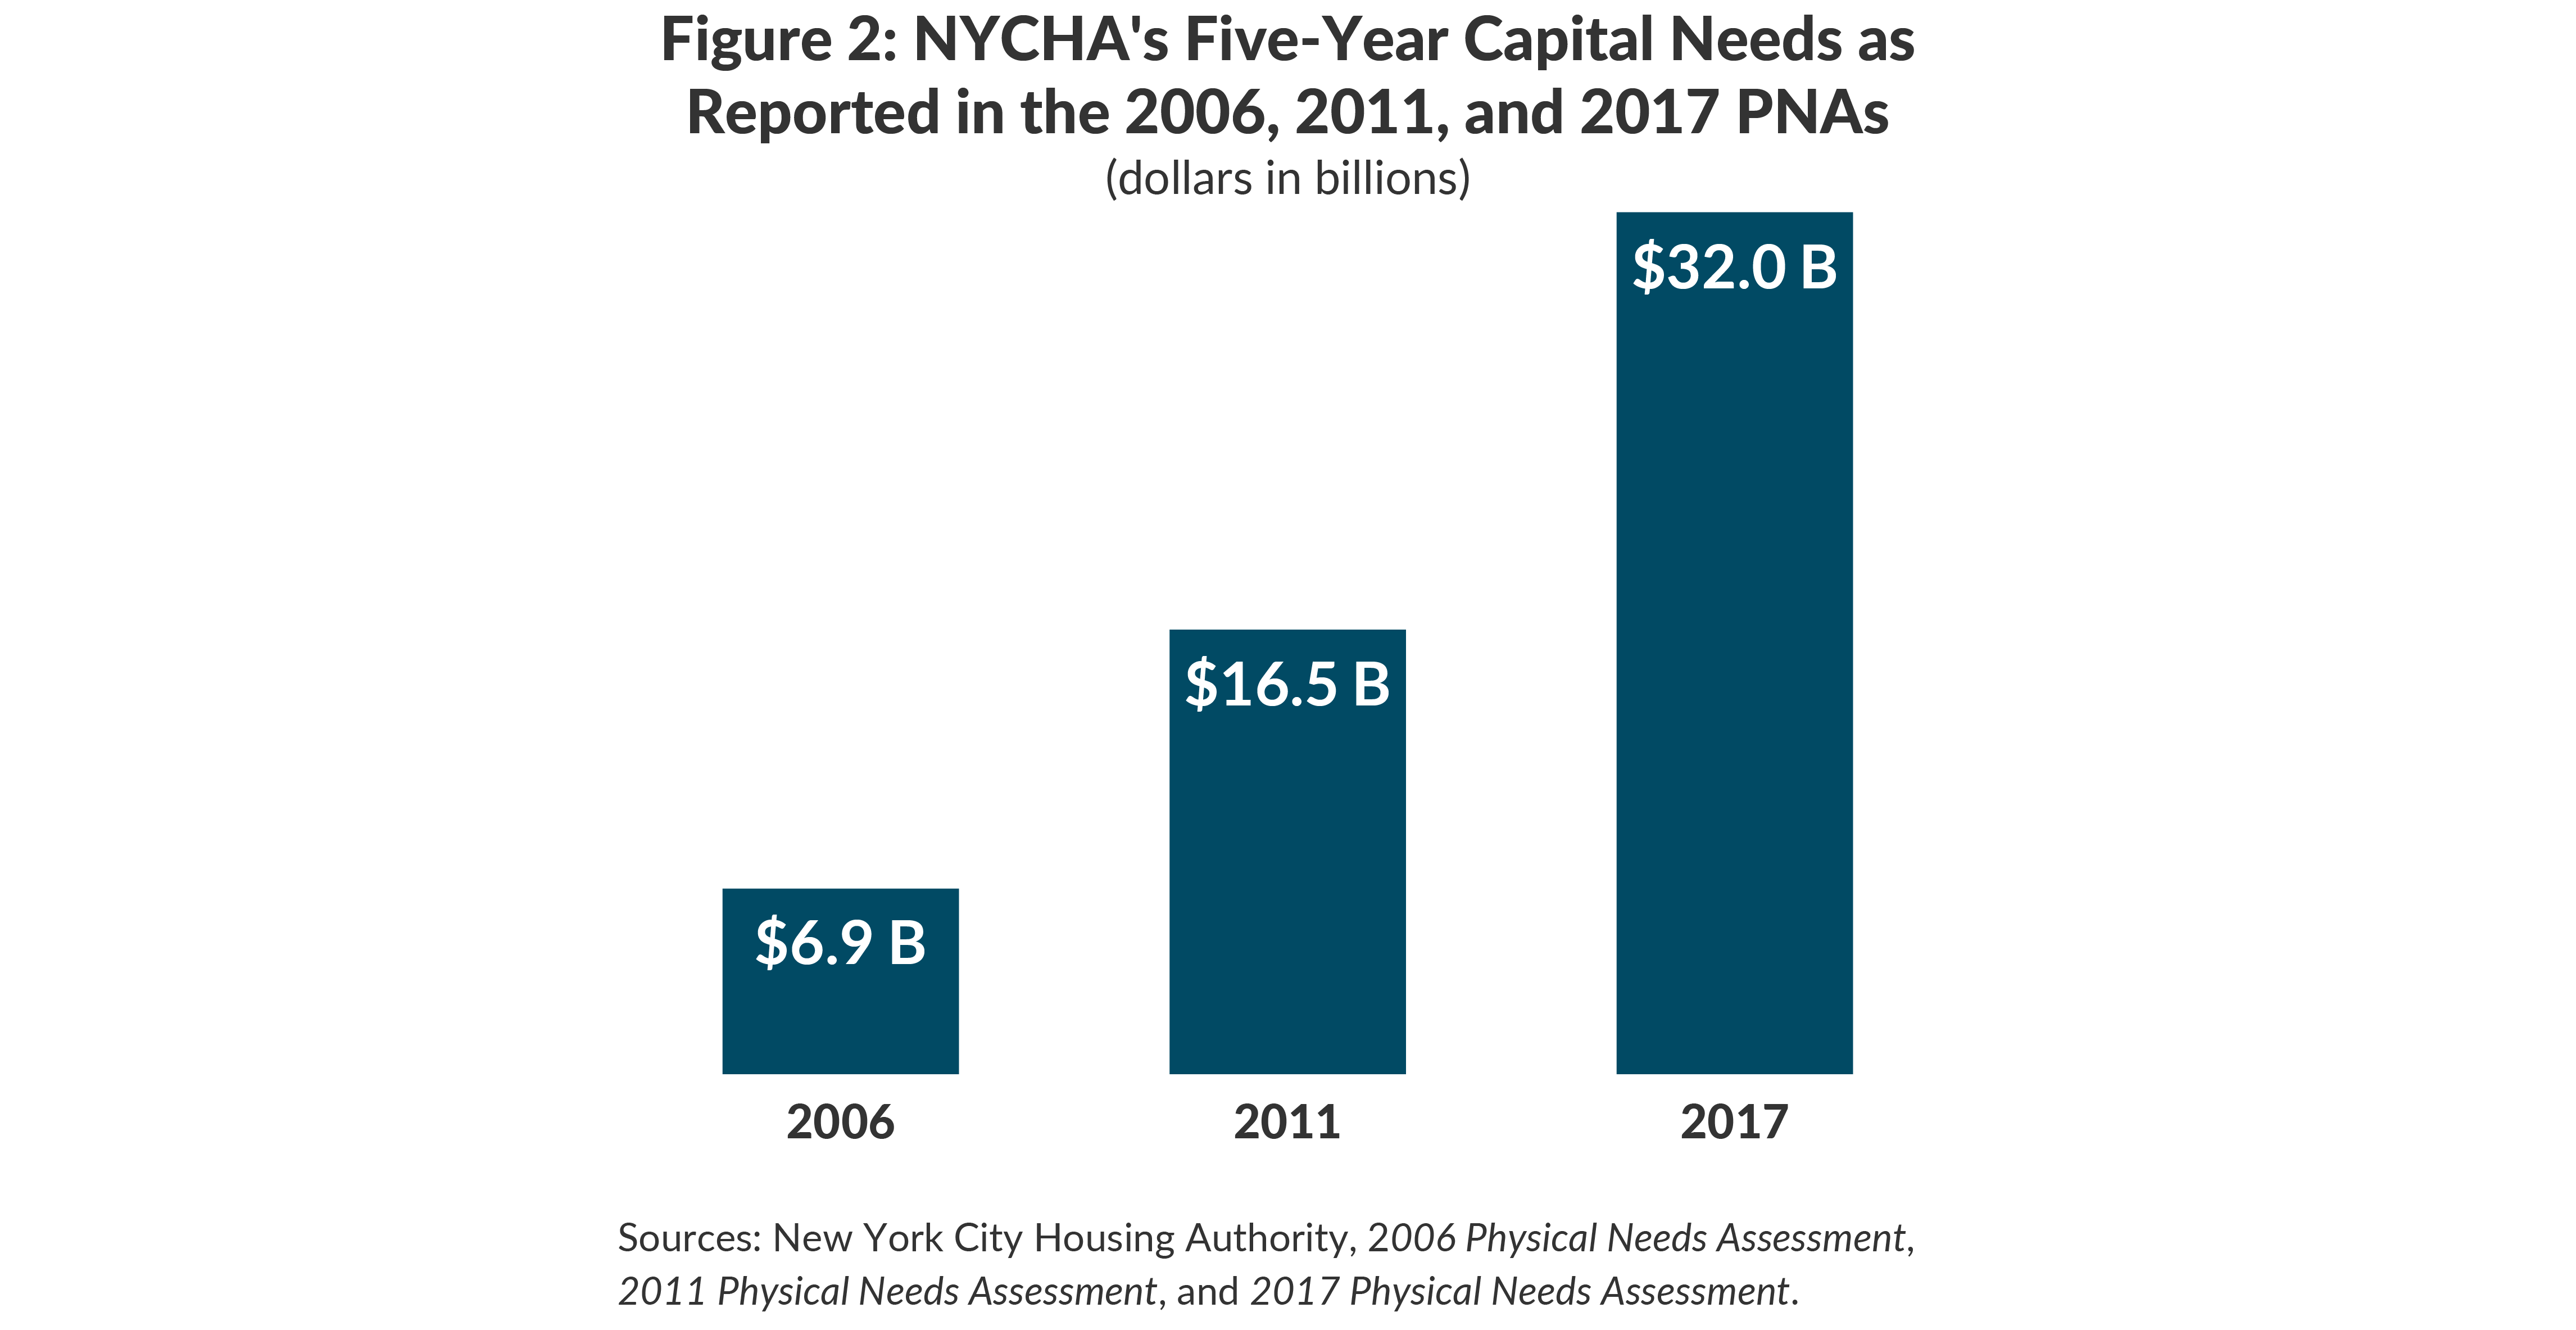 Figure 2: NYCHA's Five-Year Capital Needs asReported in the 2006, 2011, and 2017 PNAs